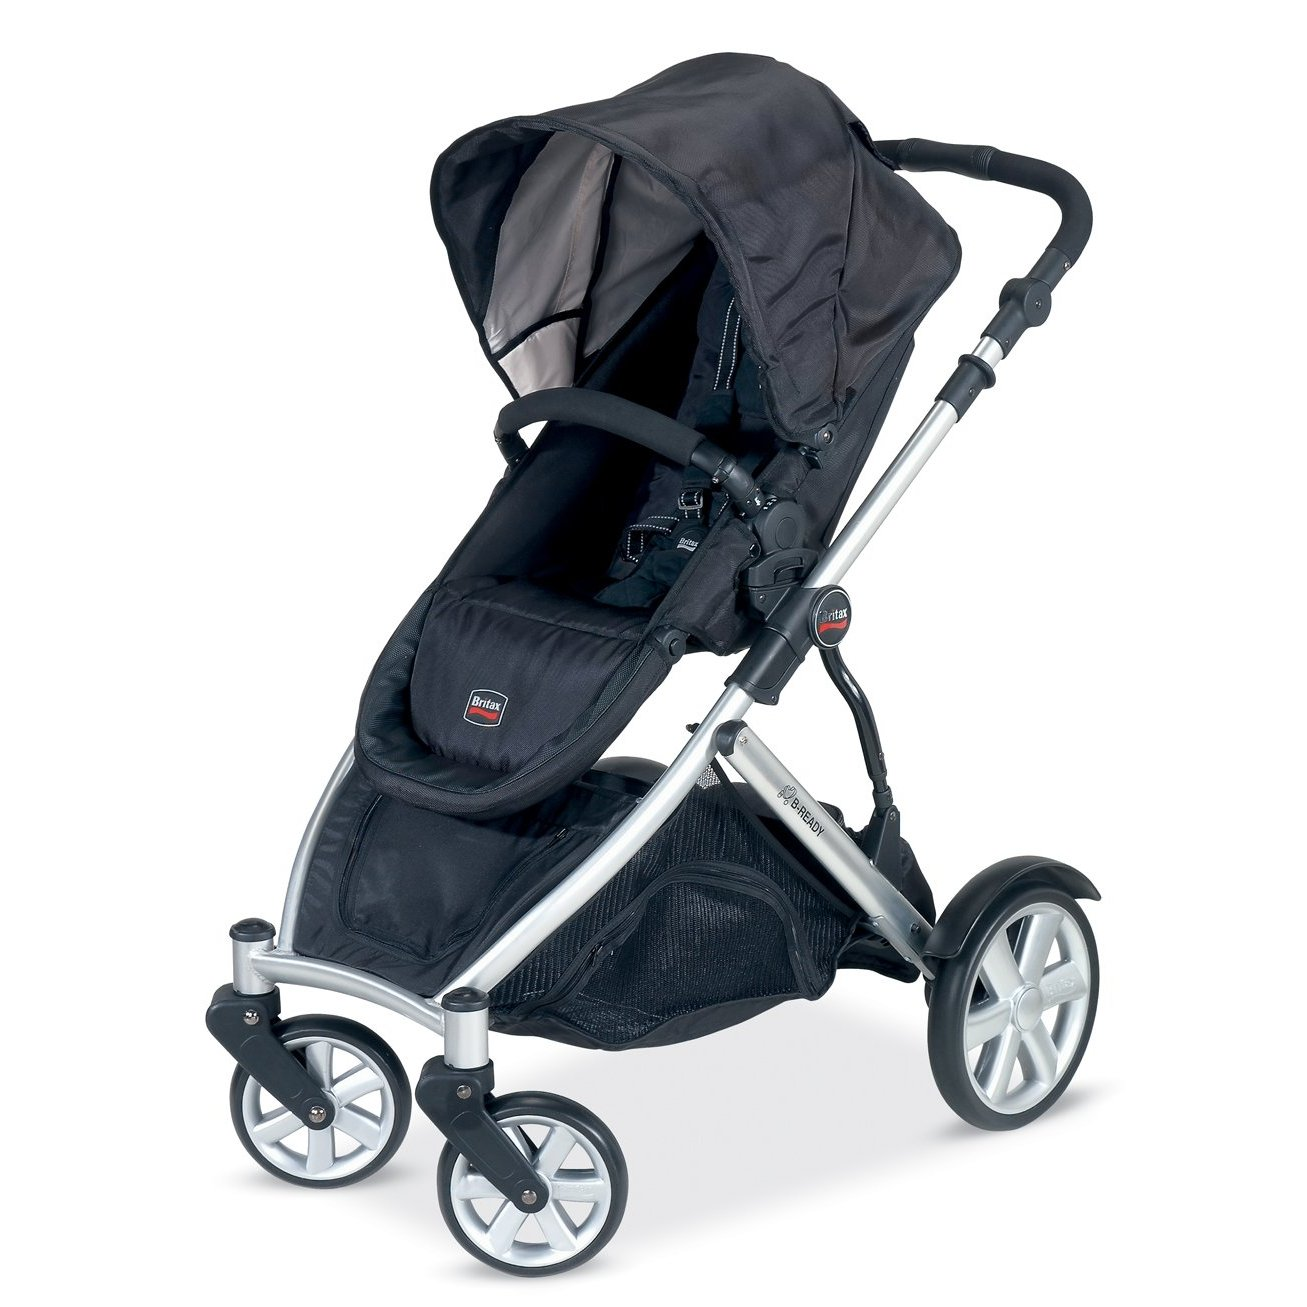 mumicollection sale britax b ready double stroller. Black Bedroom Furniture Sets. Home Design Ideas